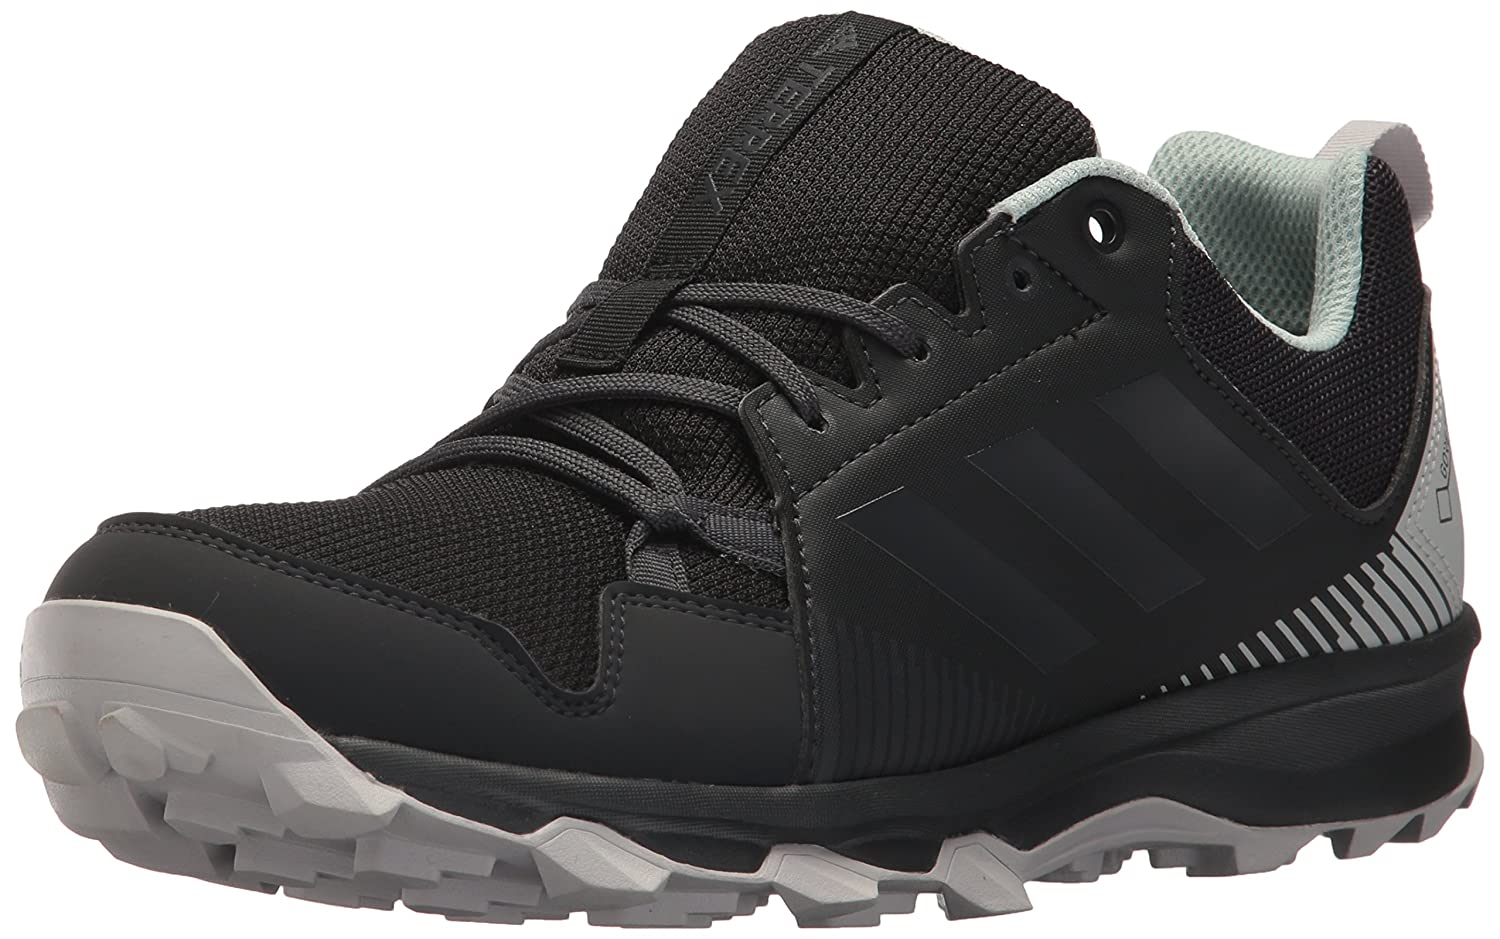 adidas outdoor Women's Terrex Tracerocker GTX W Trail Running Shoe B072YSPDD2 6.5 M US|Black/Carbon/Ash Green